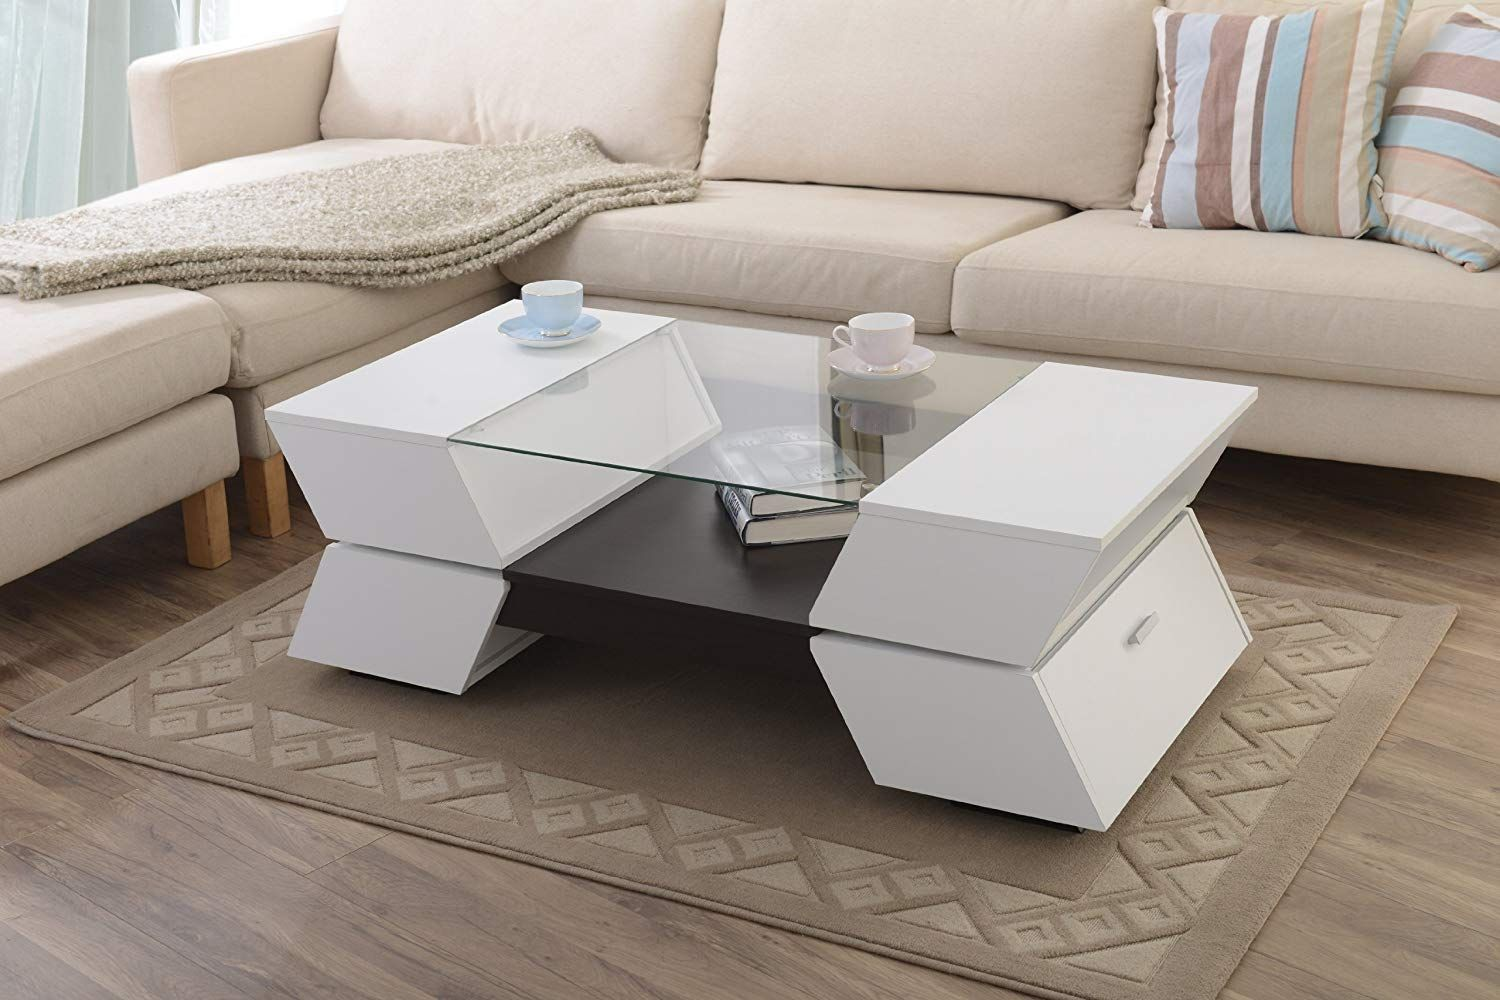 Amazon Com Homes Inside Out Iohomes Ariadne 4 Compartment Coffee Coffee Table Modern Sofa Table Contemporary Coffee Table [ 1000 x 1500 Pixel ]